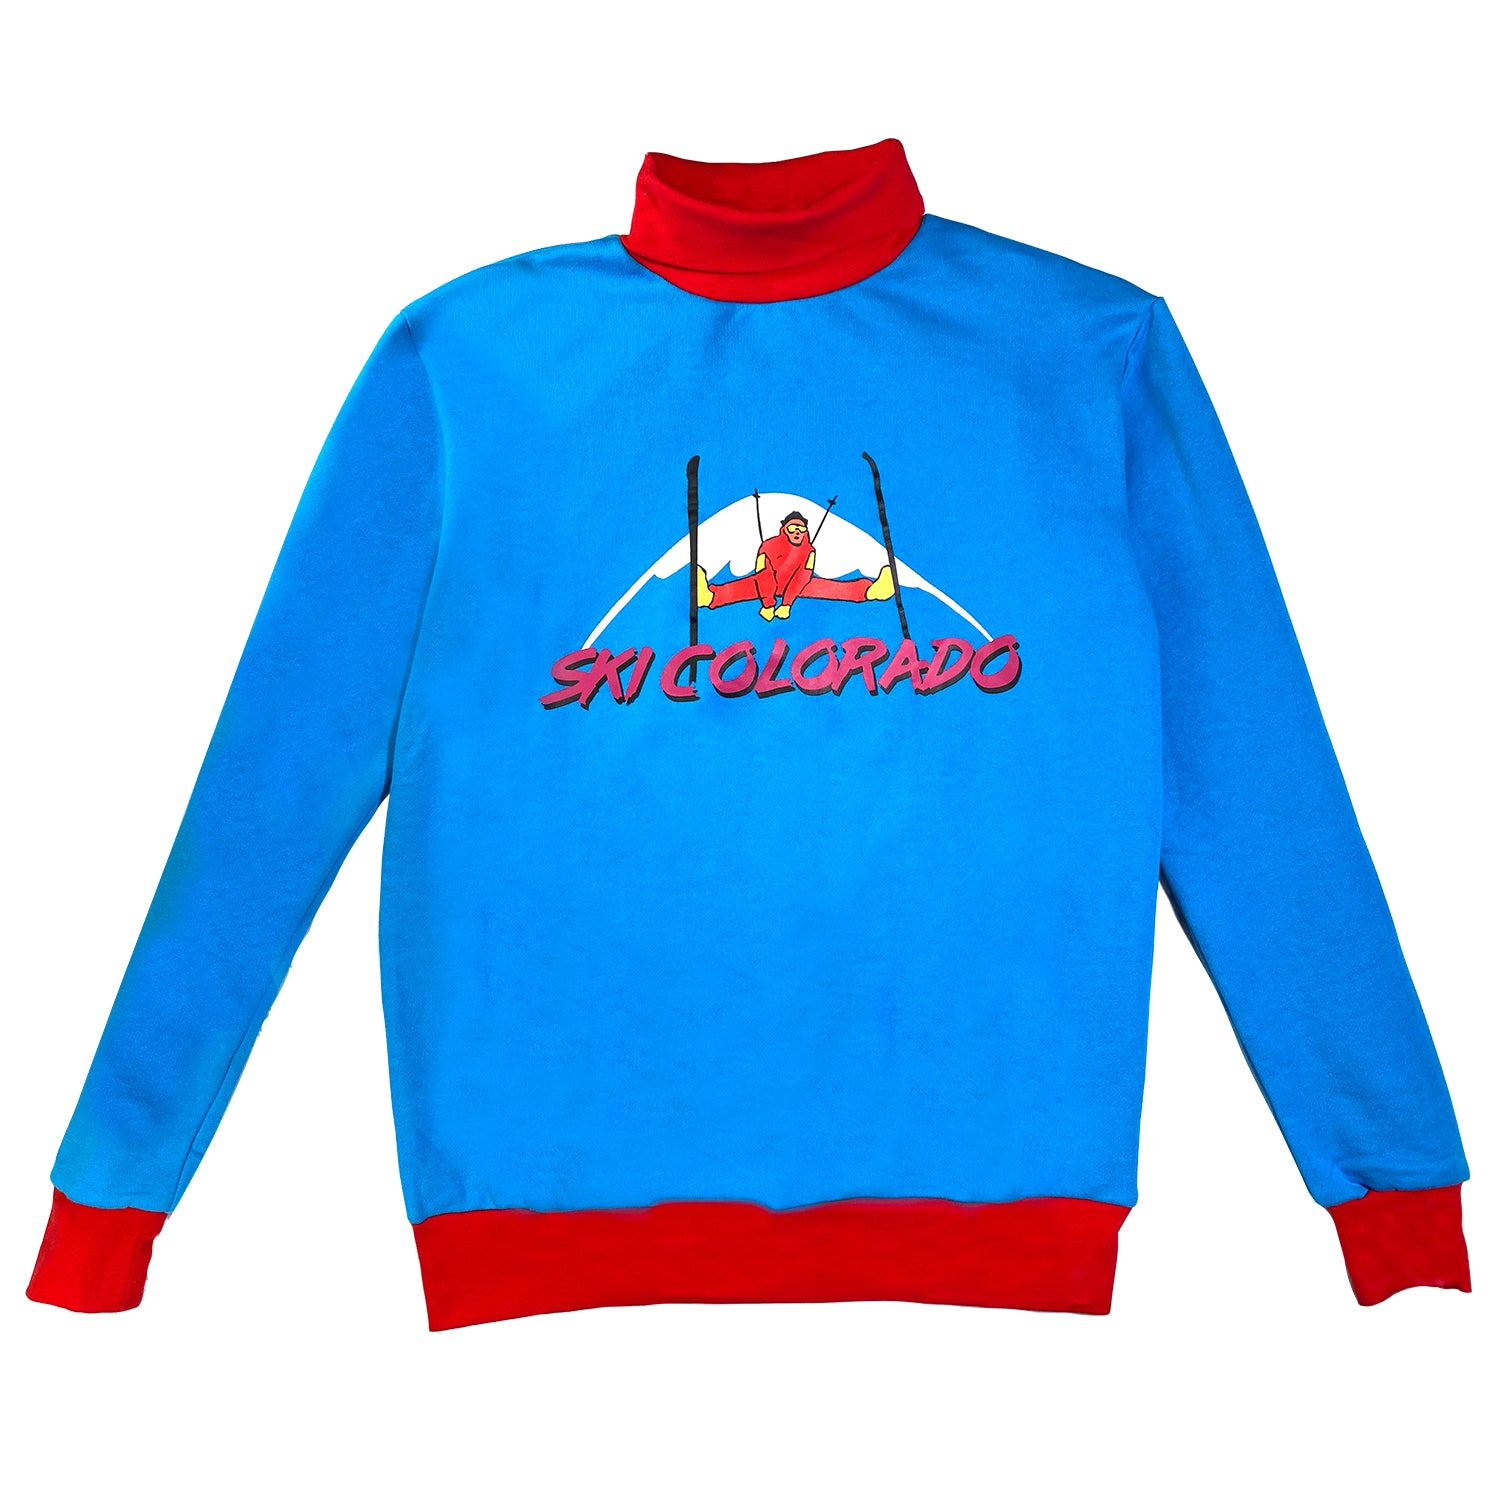 Ski Colorado - Vintage Retro Turtleneck Sweater